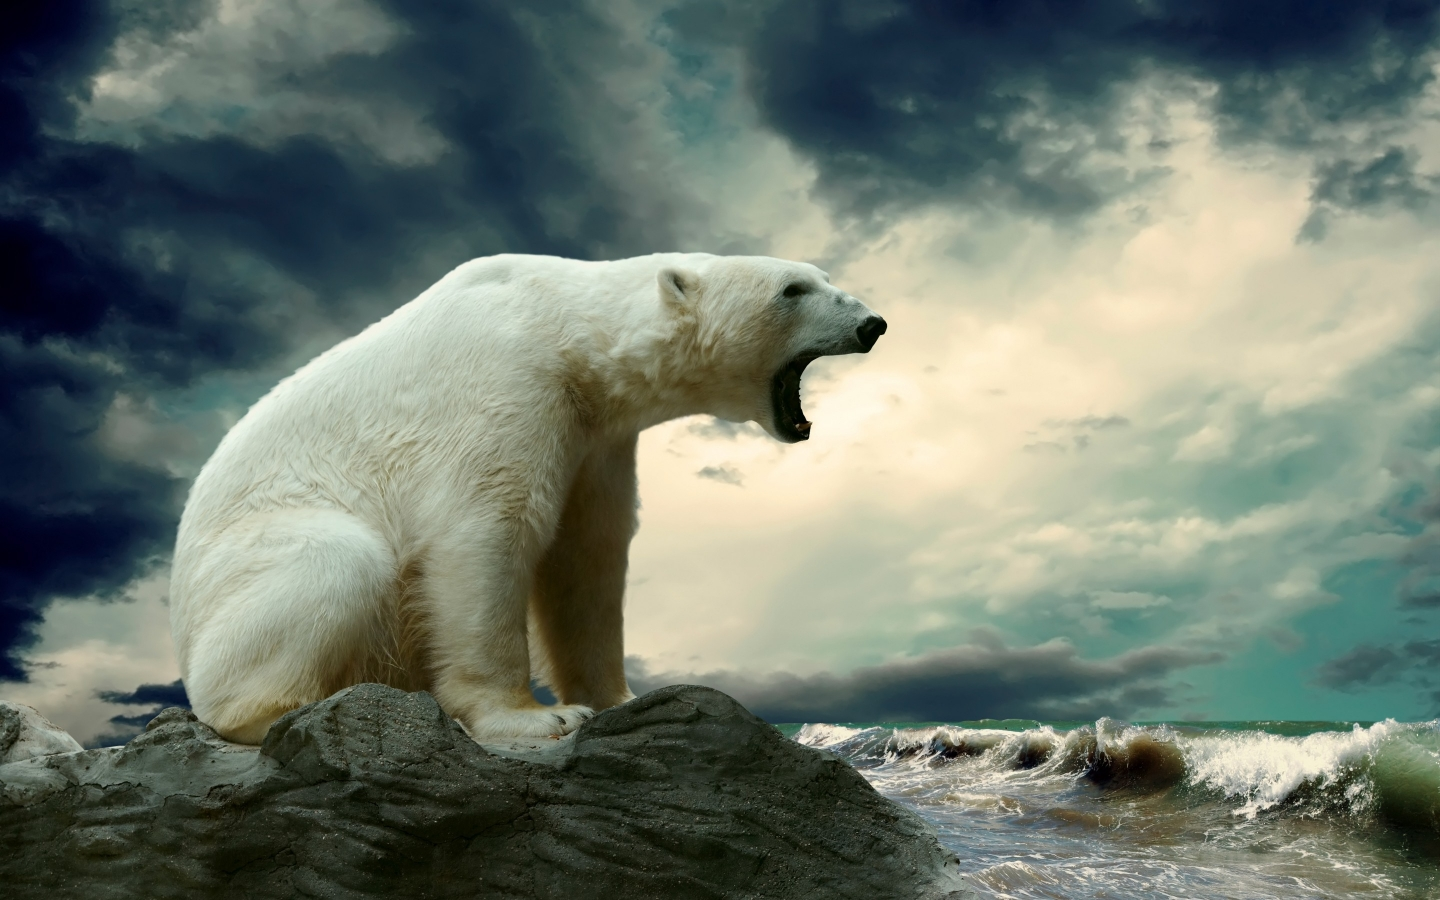 Pollution lowers polar bear penile bone density, threatening their mating abilities